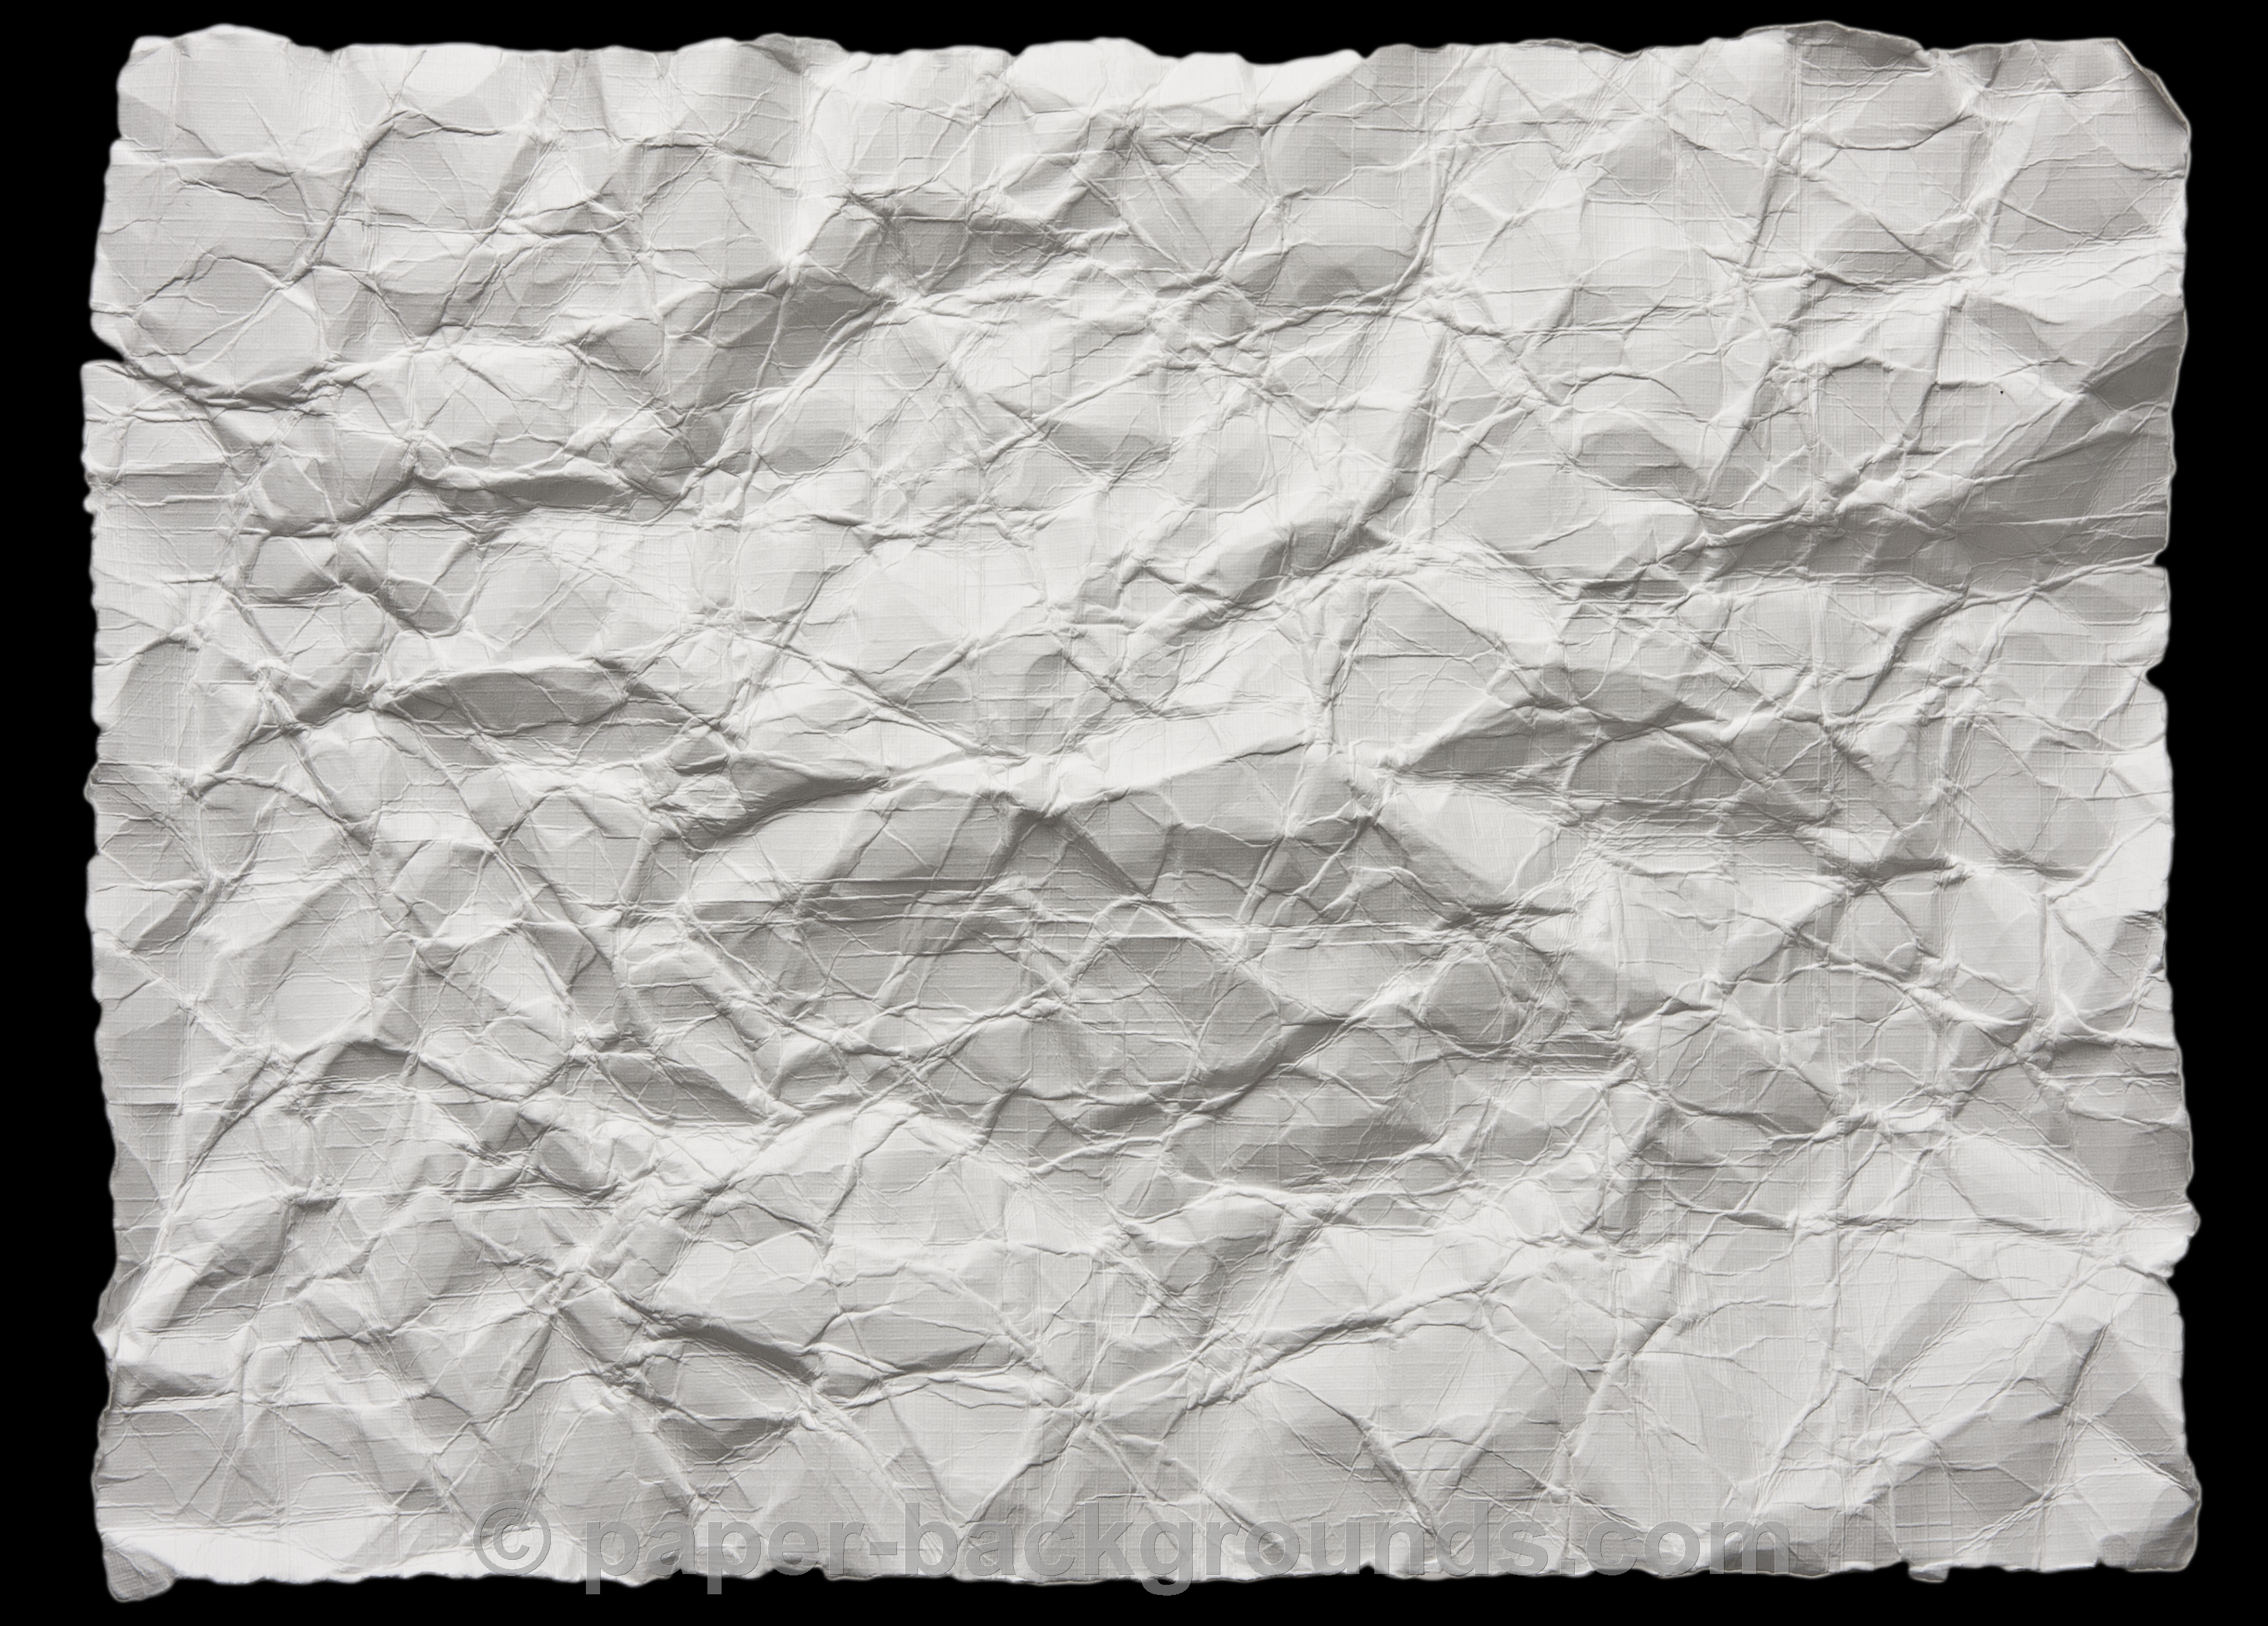 wrinkled paper texture Find crumpled paper texture stock images in hd and millions of other royalty-free stock photos, illustrations, and vectors in the shutterstock collection thousands of new, high-quality pictures added every day.